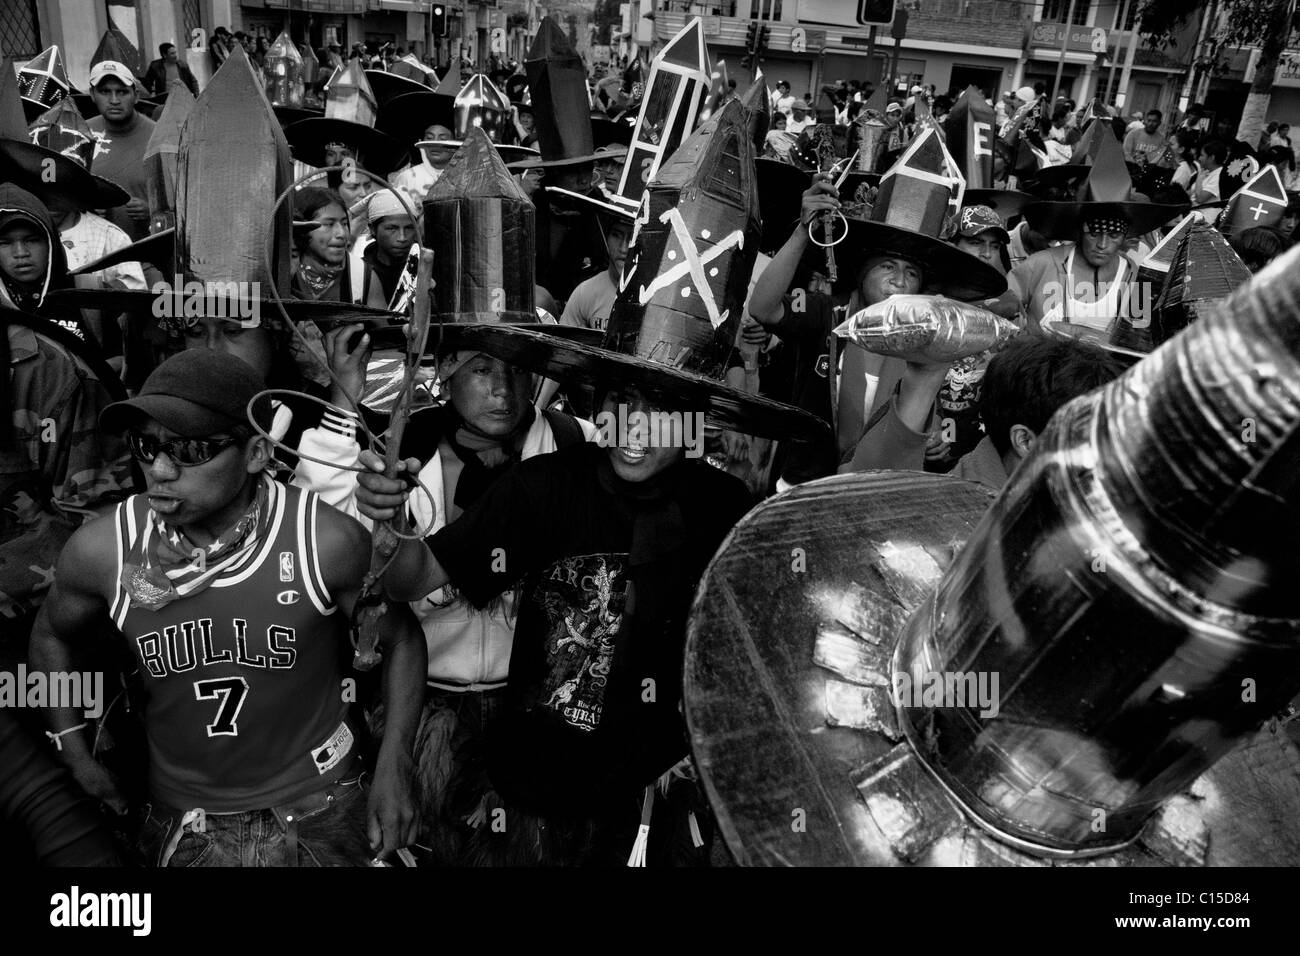 Indians, wearing black cardboard hats, dance and shout violently during the Inti Raymi festivities in Cotacachi, - Stock Image